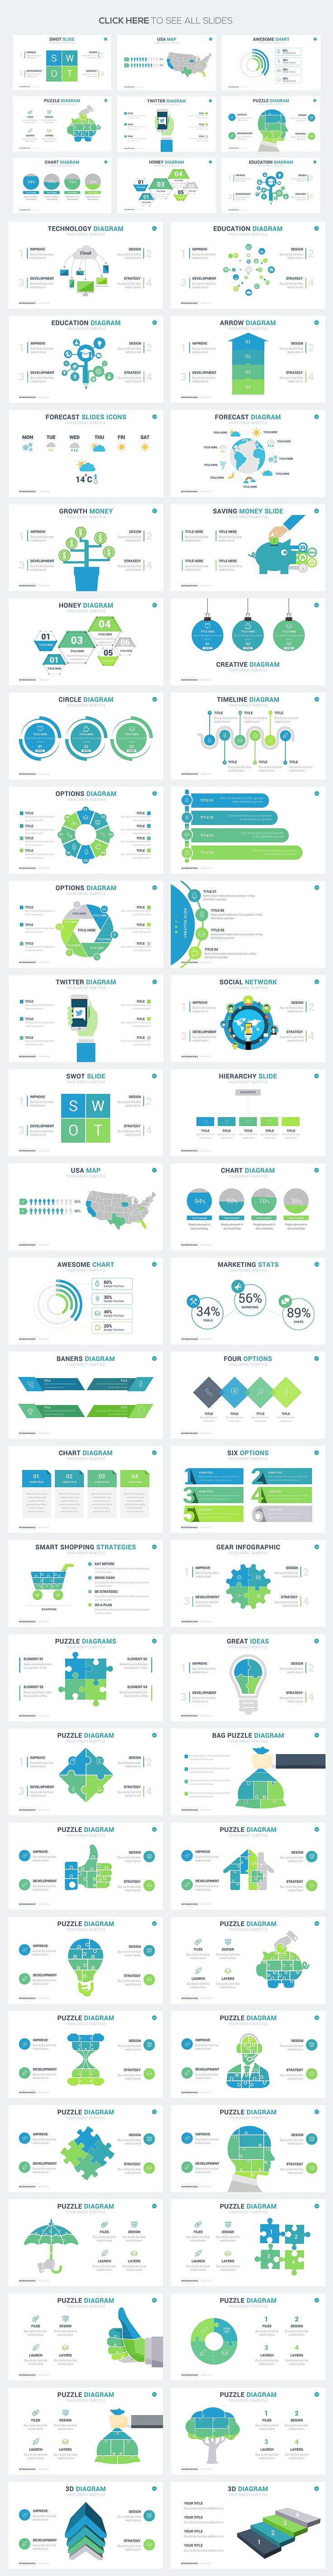 Mega Infographics - Free Updates! by Rocketo Graphics